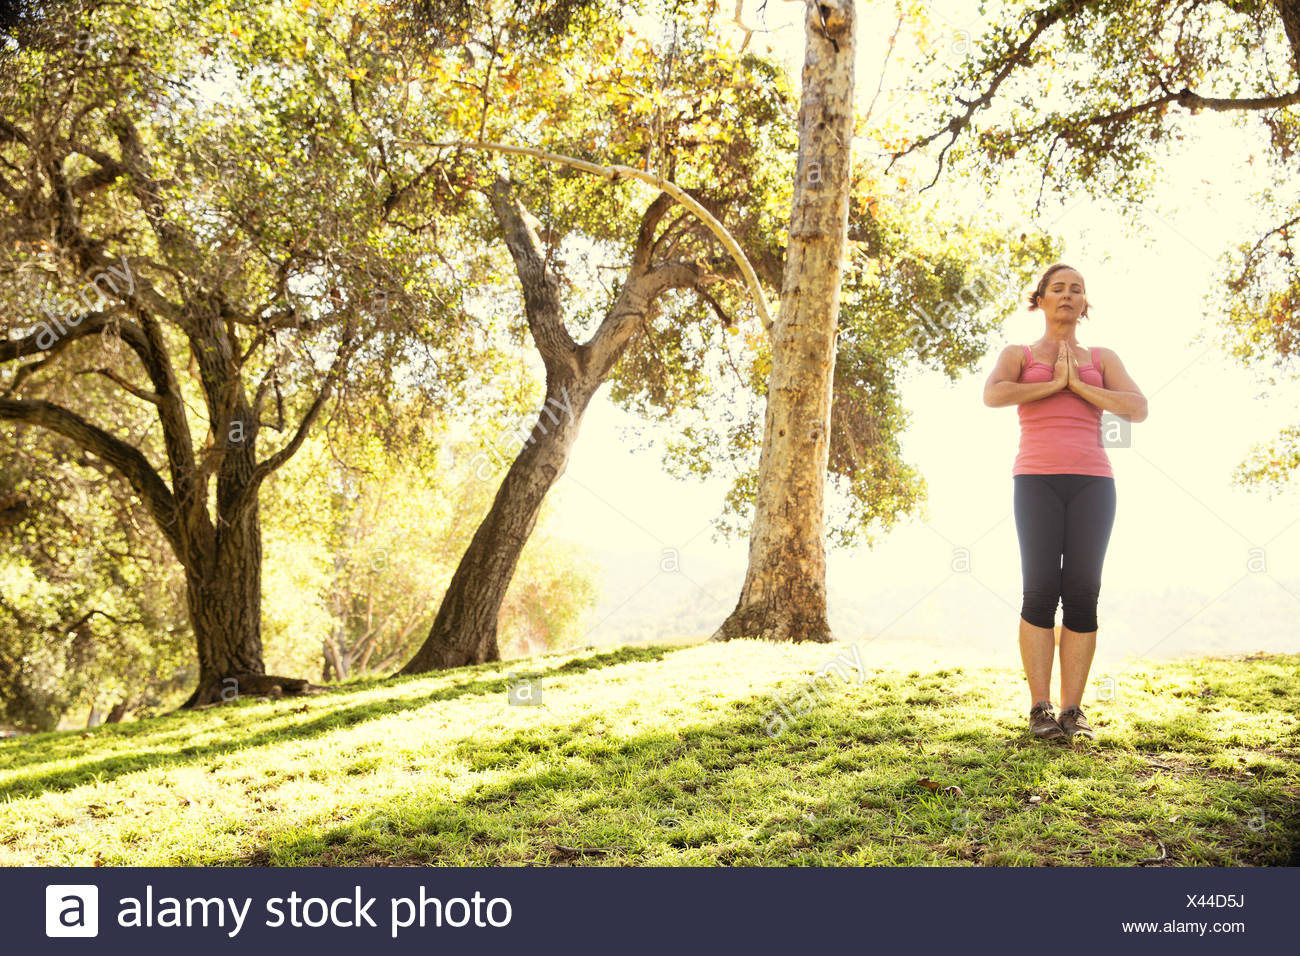 Mature woman in park practicing yoga Stock Photo